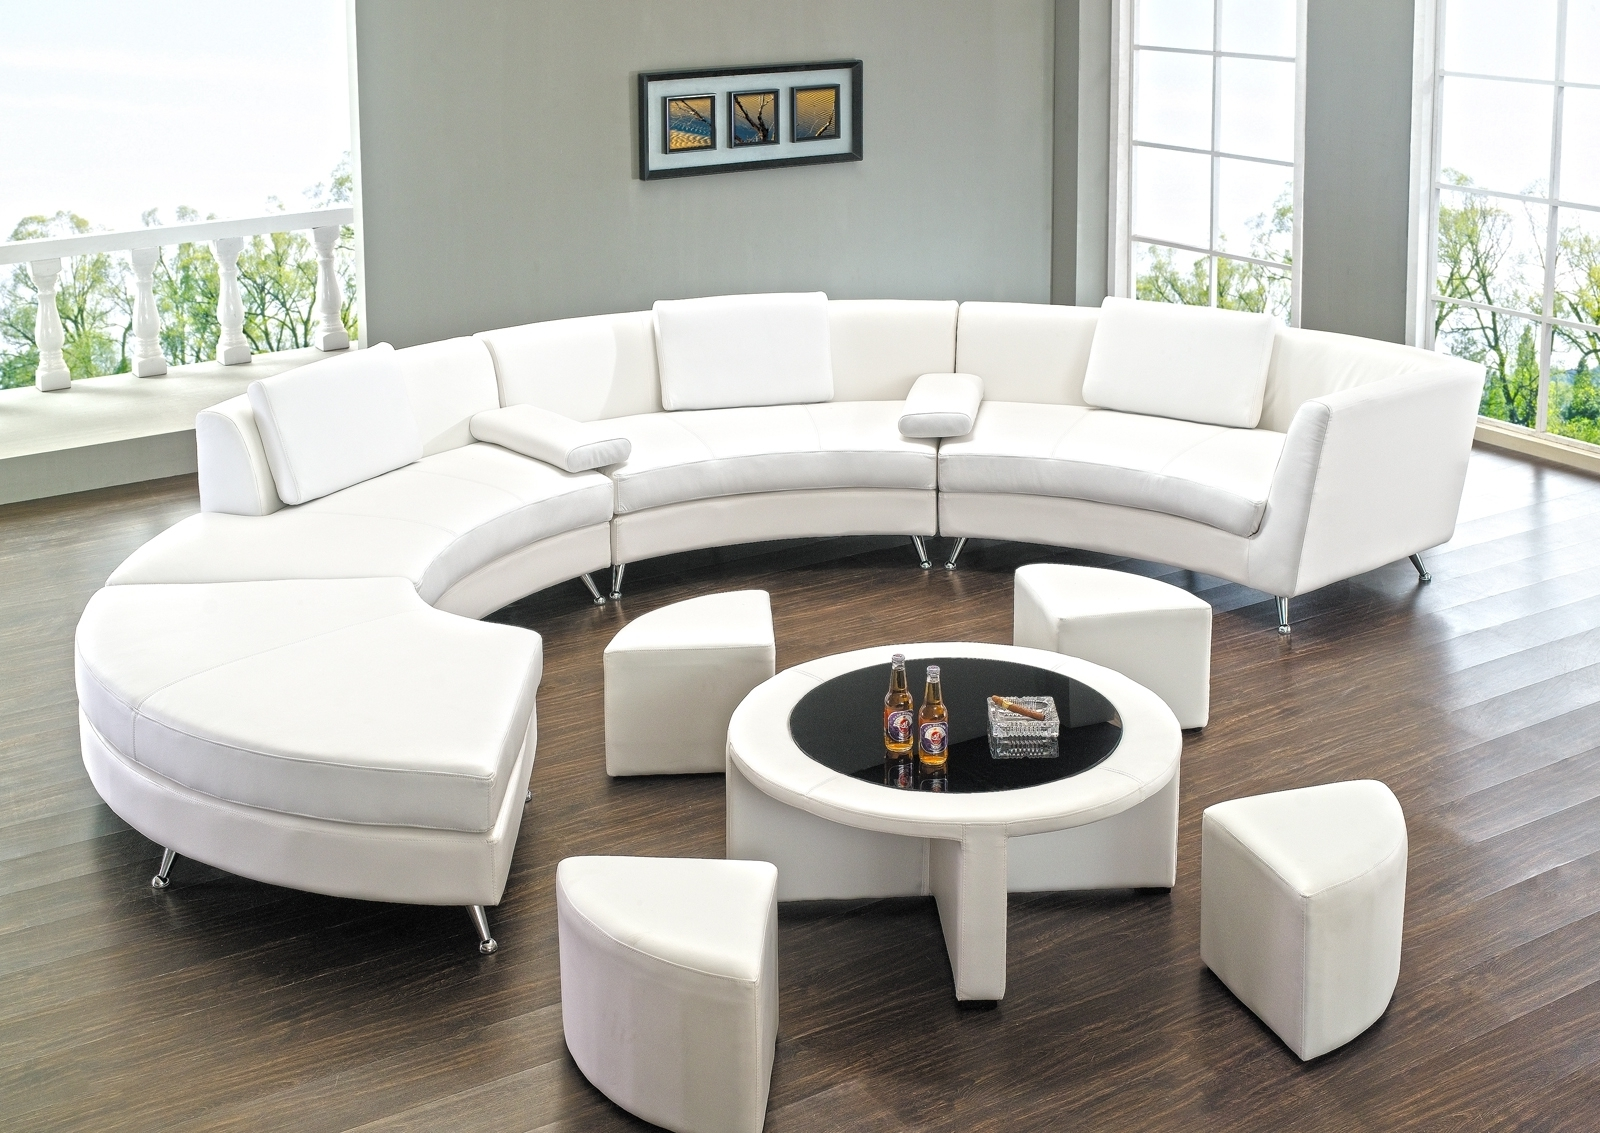 Newest Round Sectional Sofa Has One Of The Best Kind Of Other Is With Regard To Rounded Sofas (View 8 of 15)